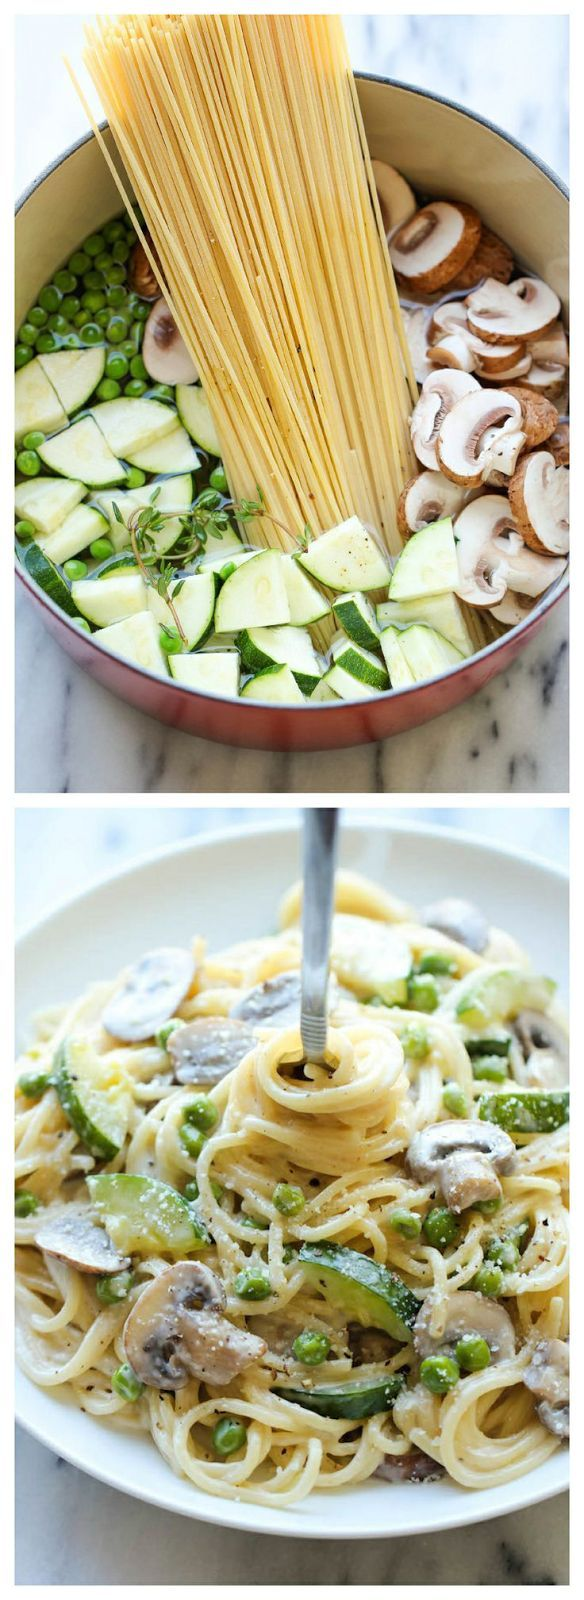 One Pot Zucchini Mushroom Pasta. It's January kids. Healthy time. This dish could the start:) #foodie